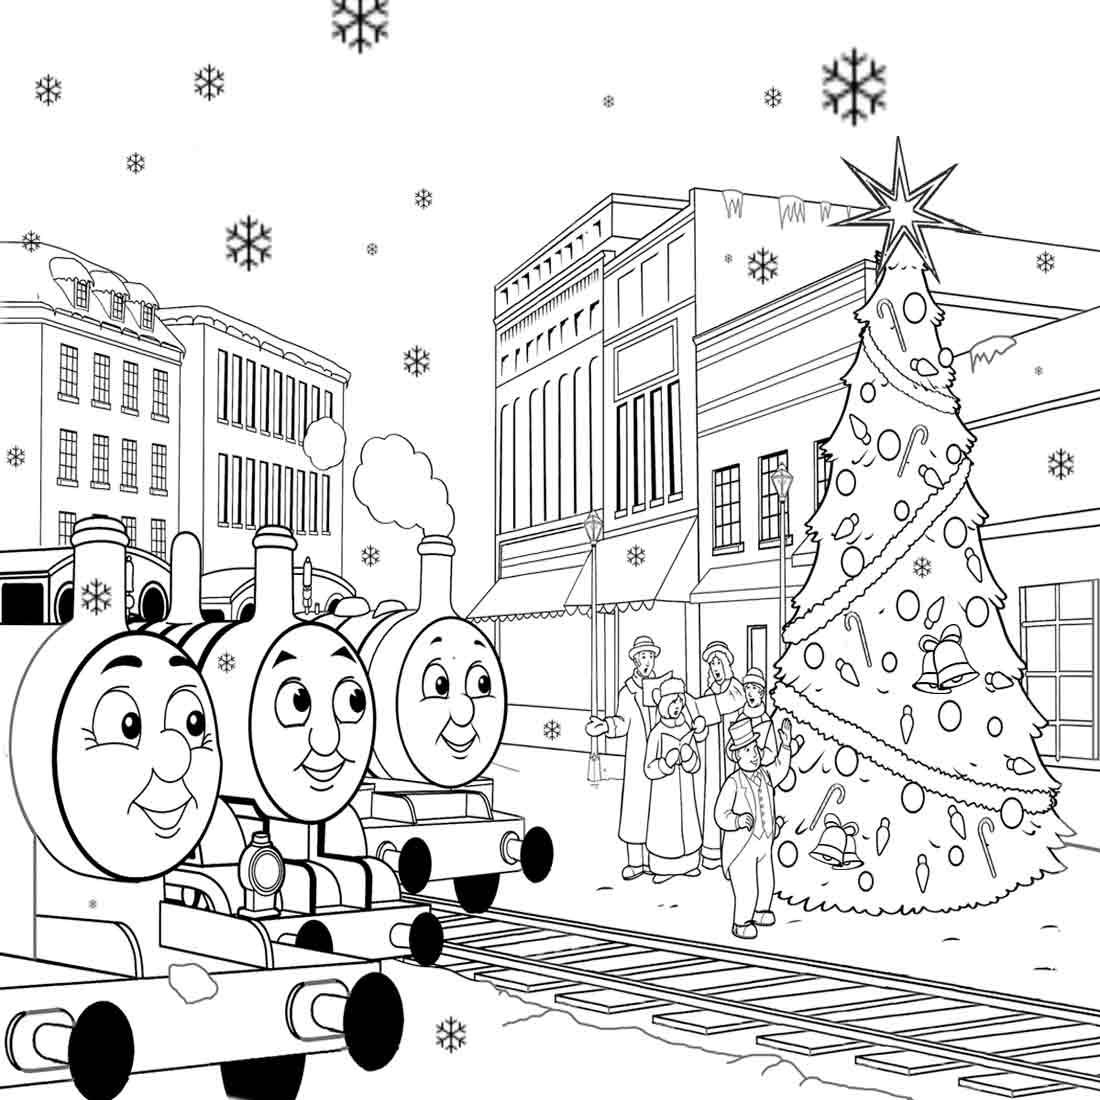 Free printable train caboose coloring pages - Christmas Train Cars Coloring Pages Oloring Pages For All Ages